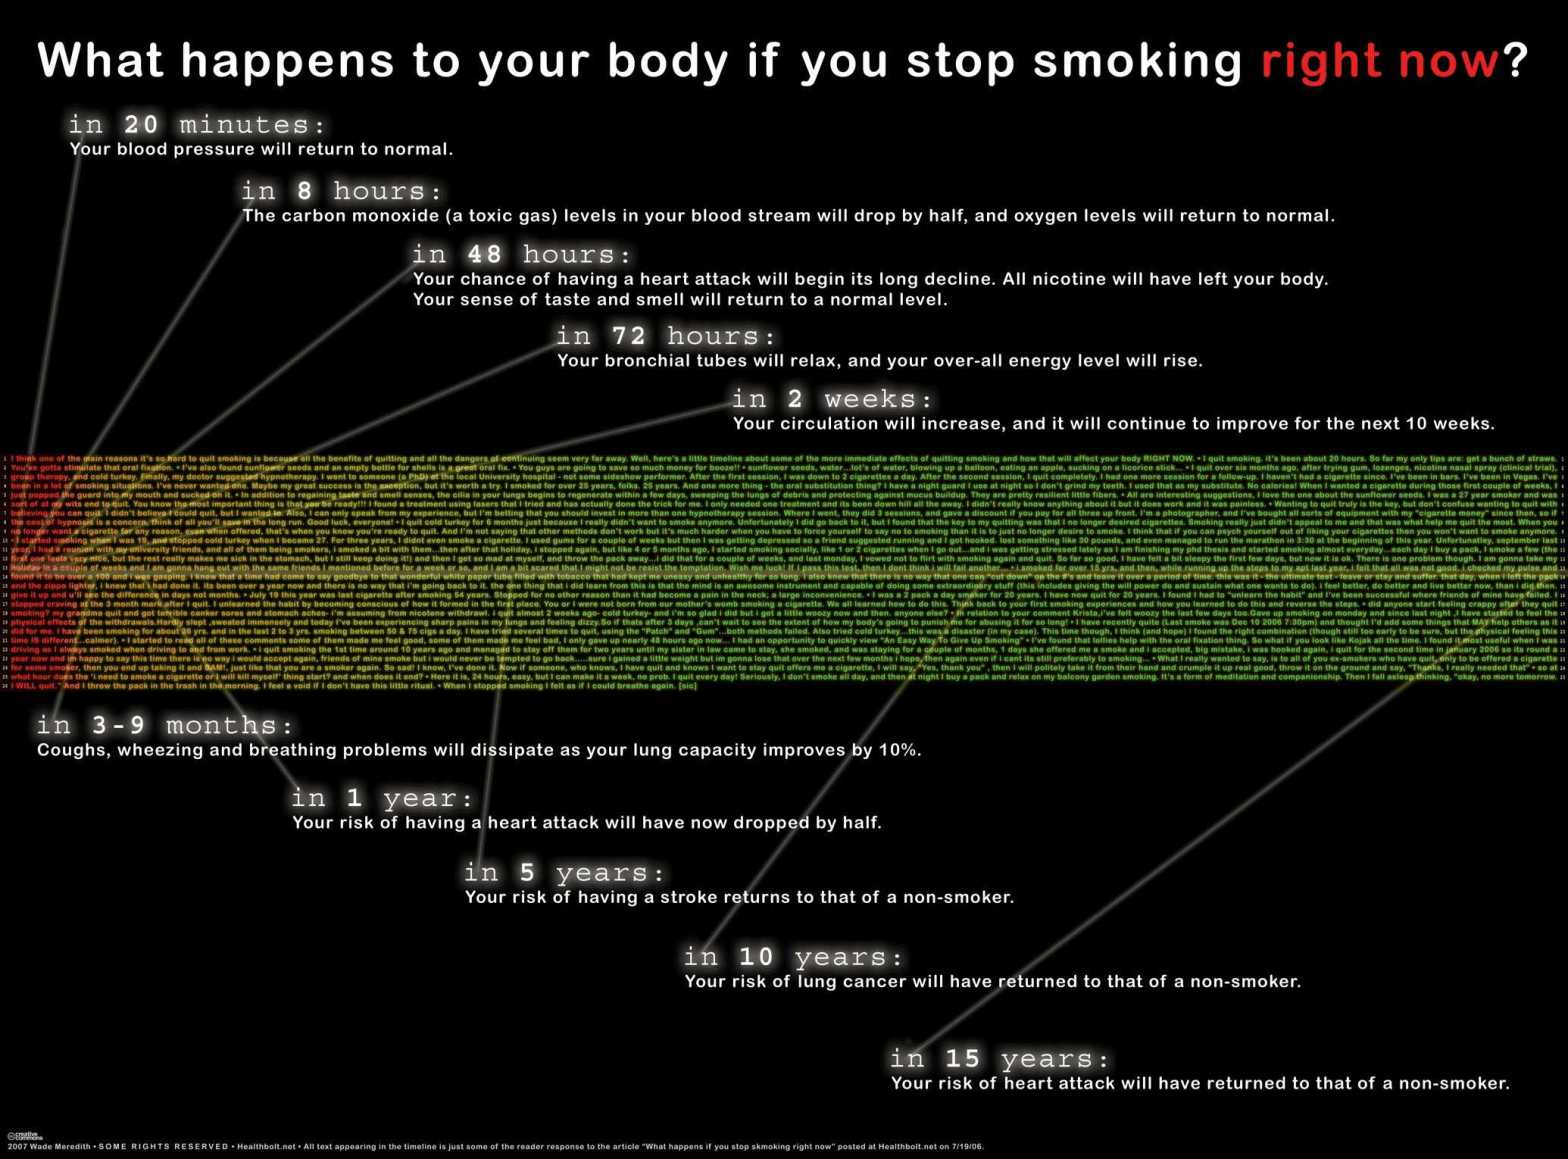 What happens to your body if you stop smoking right now?